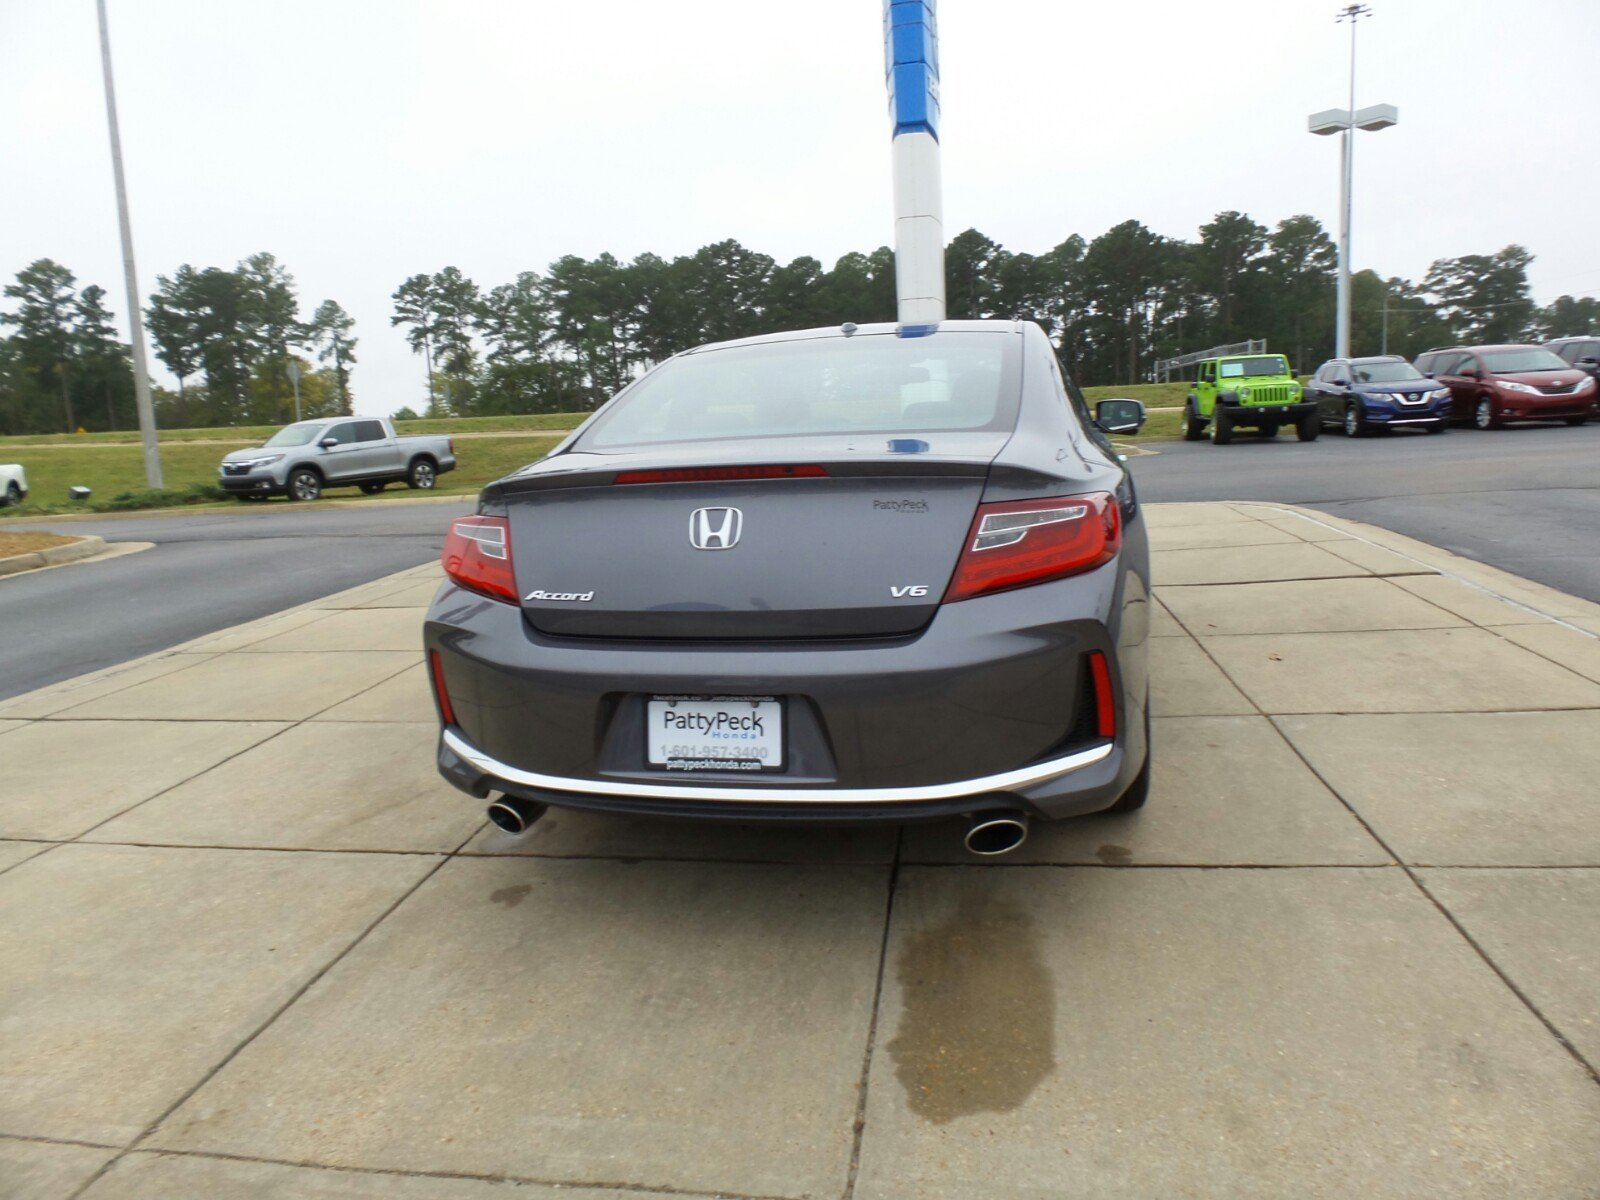 Pre Owned 2016 Honda Accord Coupe EX L 2dr Car in Ridgeland